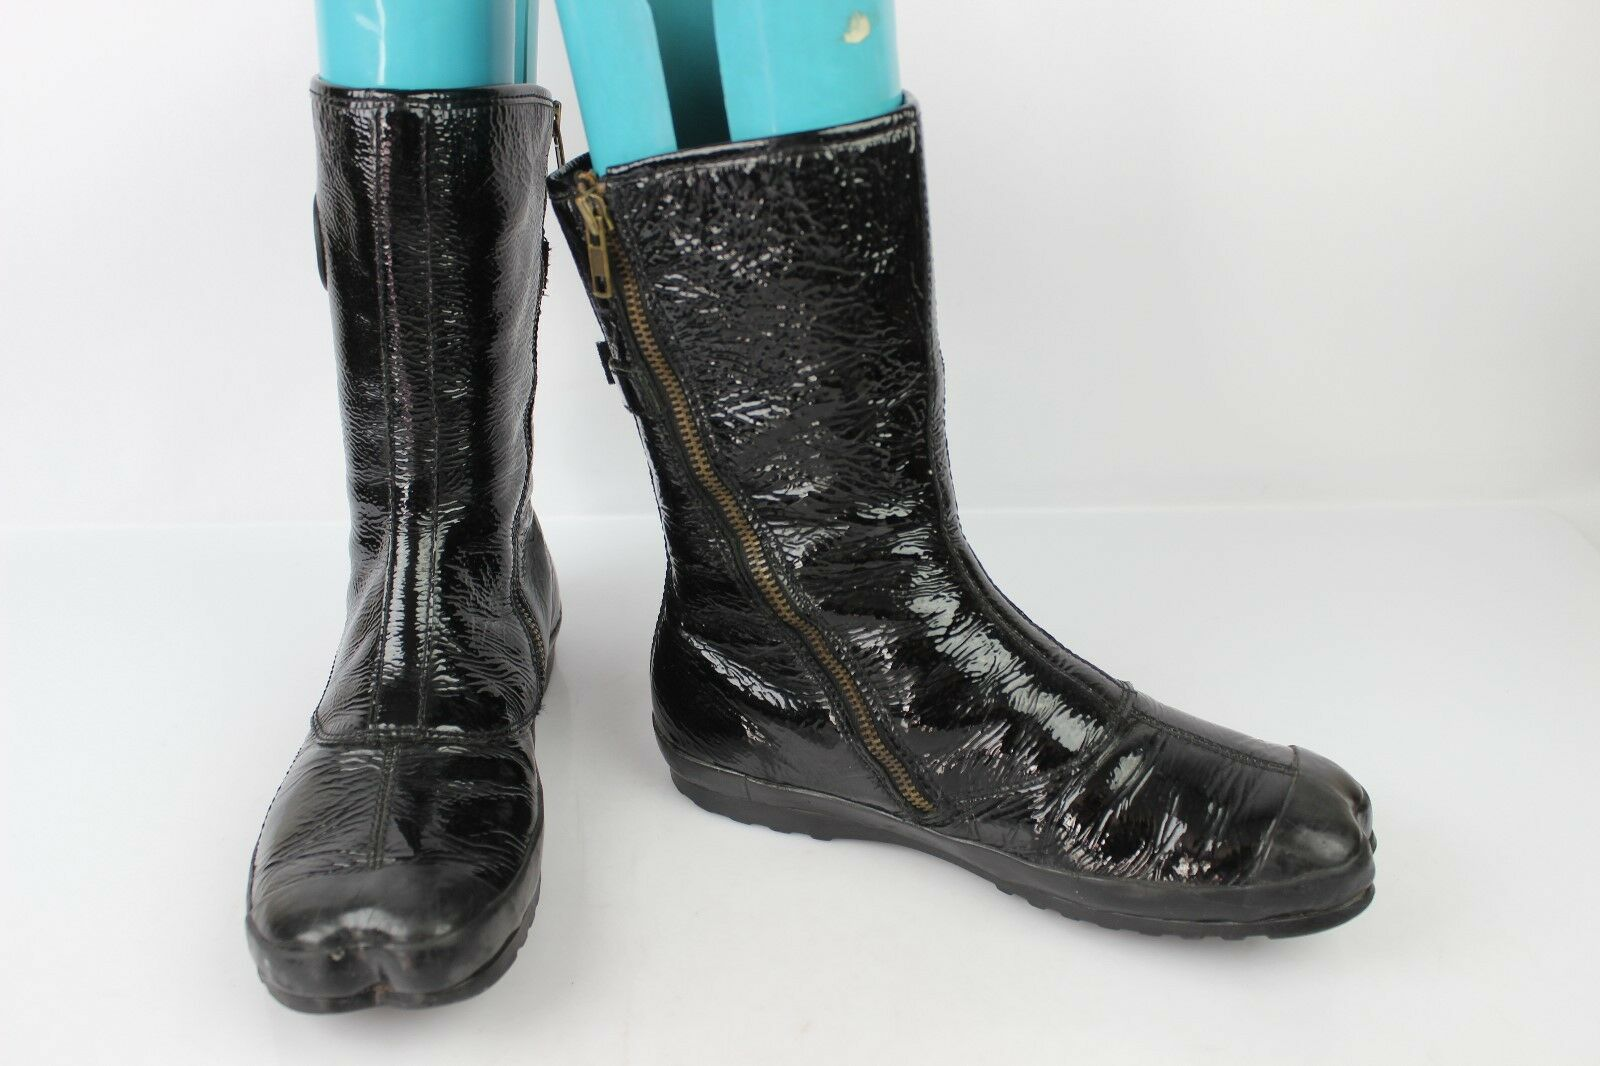 Leather boots Patent PALLADIUM   FR 37 GOOD CONDITION